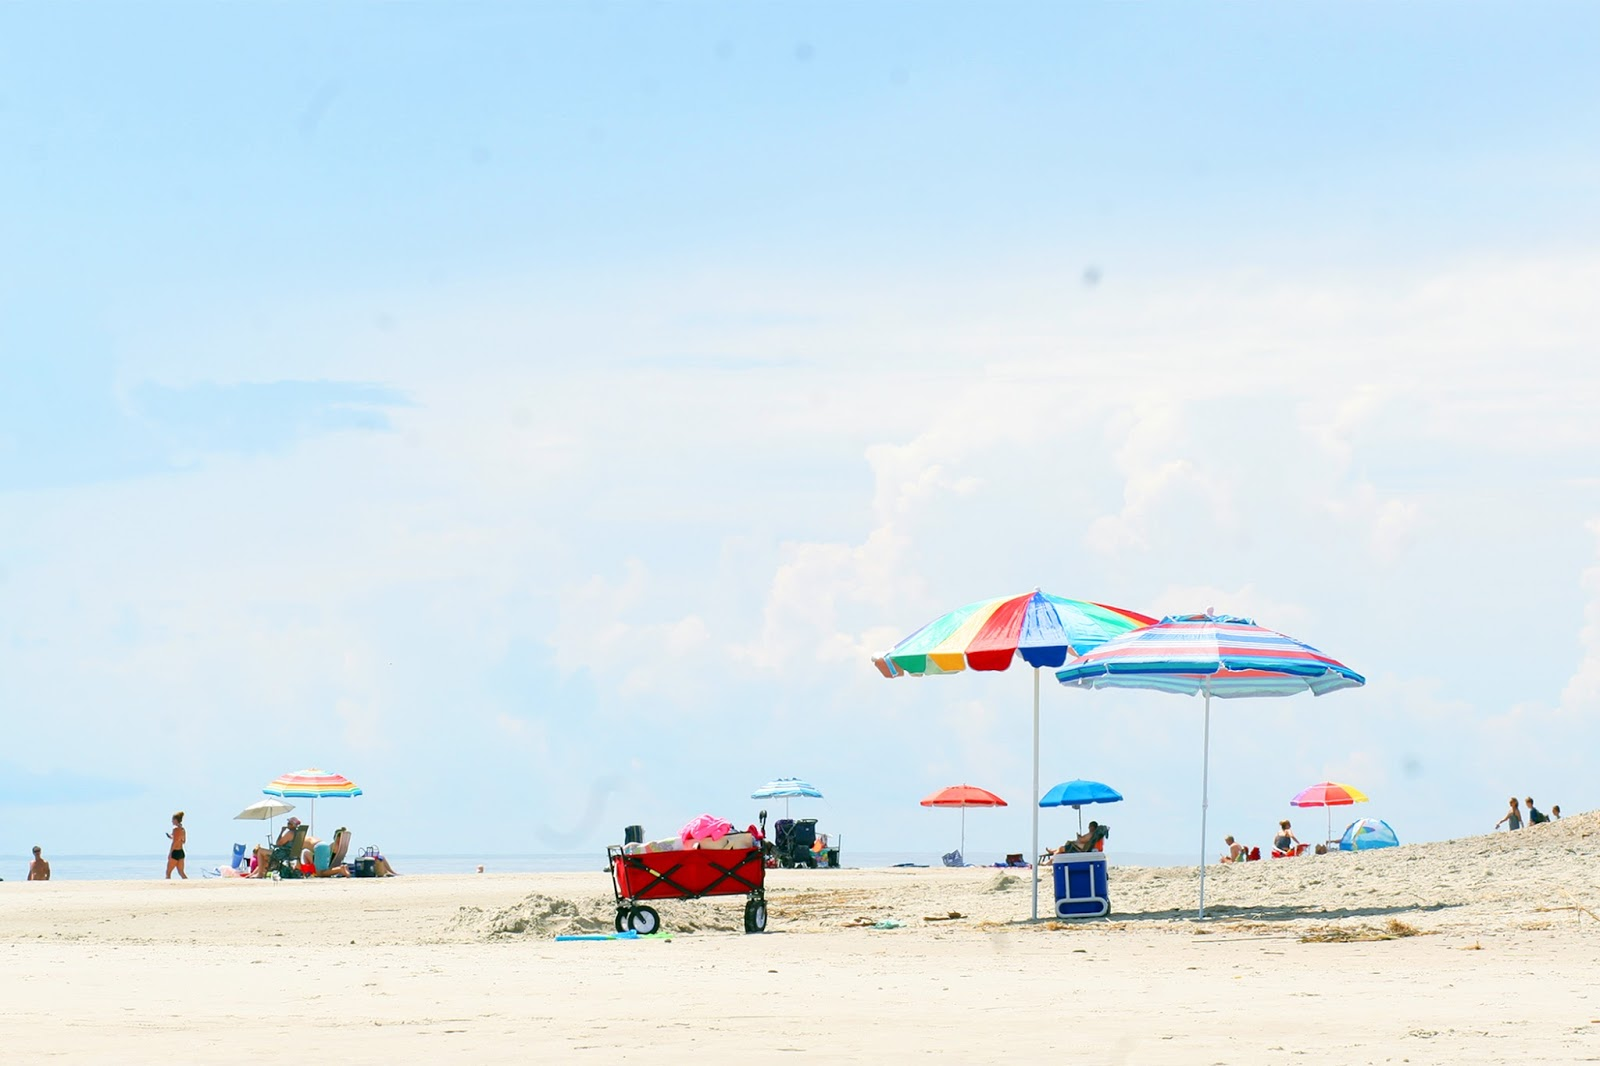 Colorful-beach-shot-of-rainbow-parasol-umbrellas-sunny-blue-sky-day